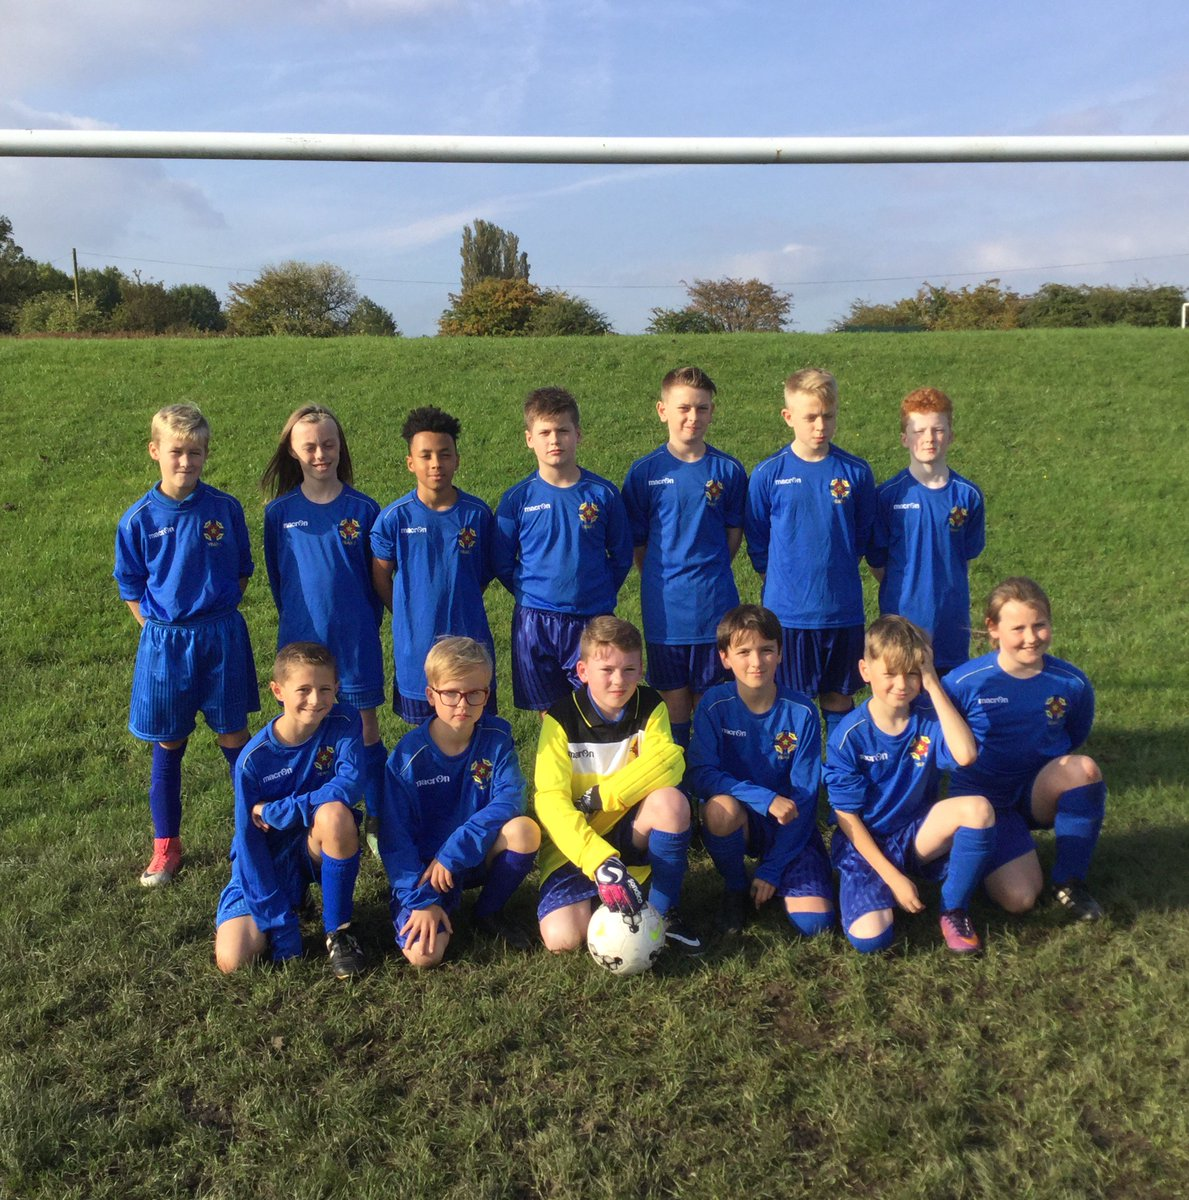 test Twitter Media - The year 7 football team line up against their match against @stmonicas #teamyear7 https://t.co/34nfKHvANX